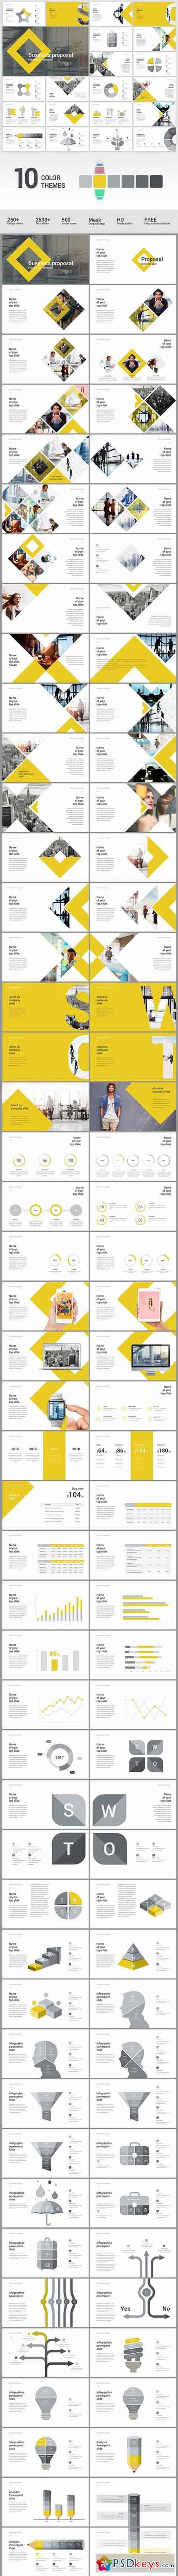 business proposal powerpoint template 20239379 » free download, Modern powerpoint